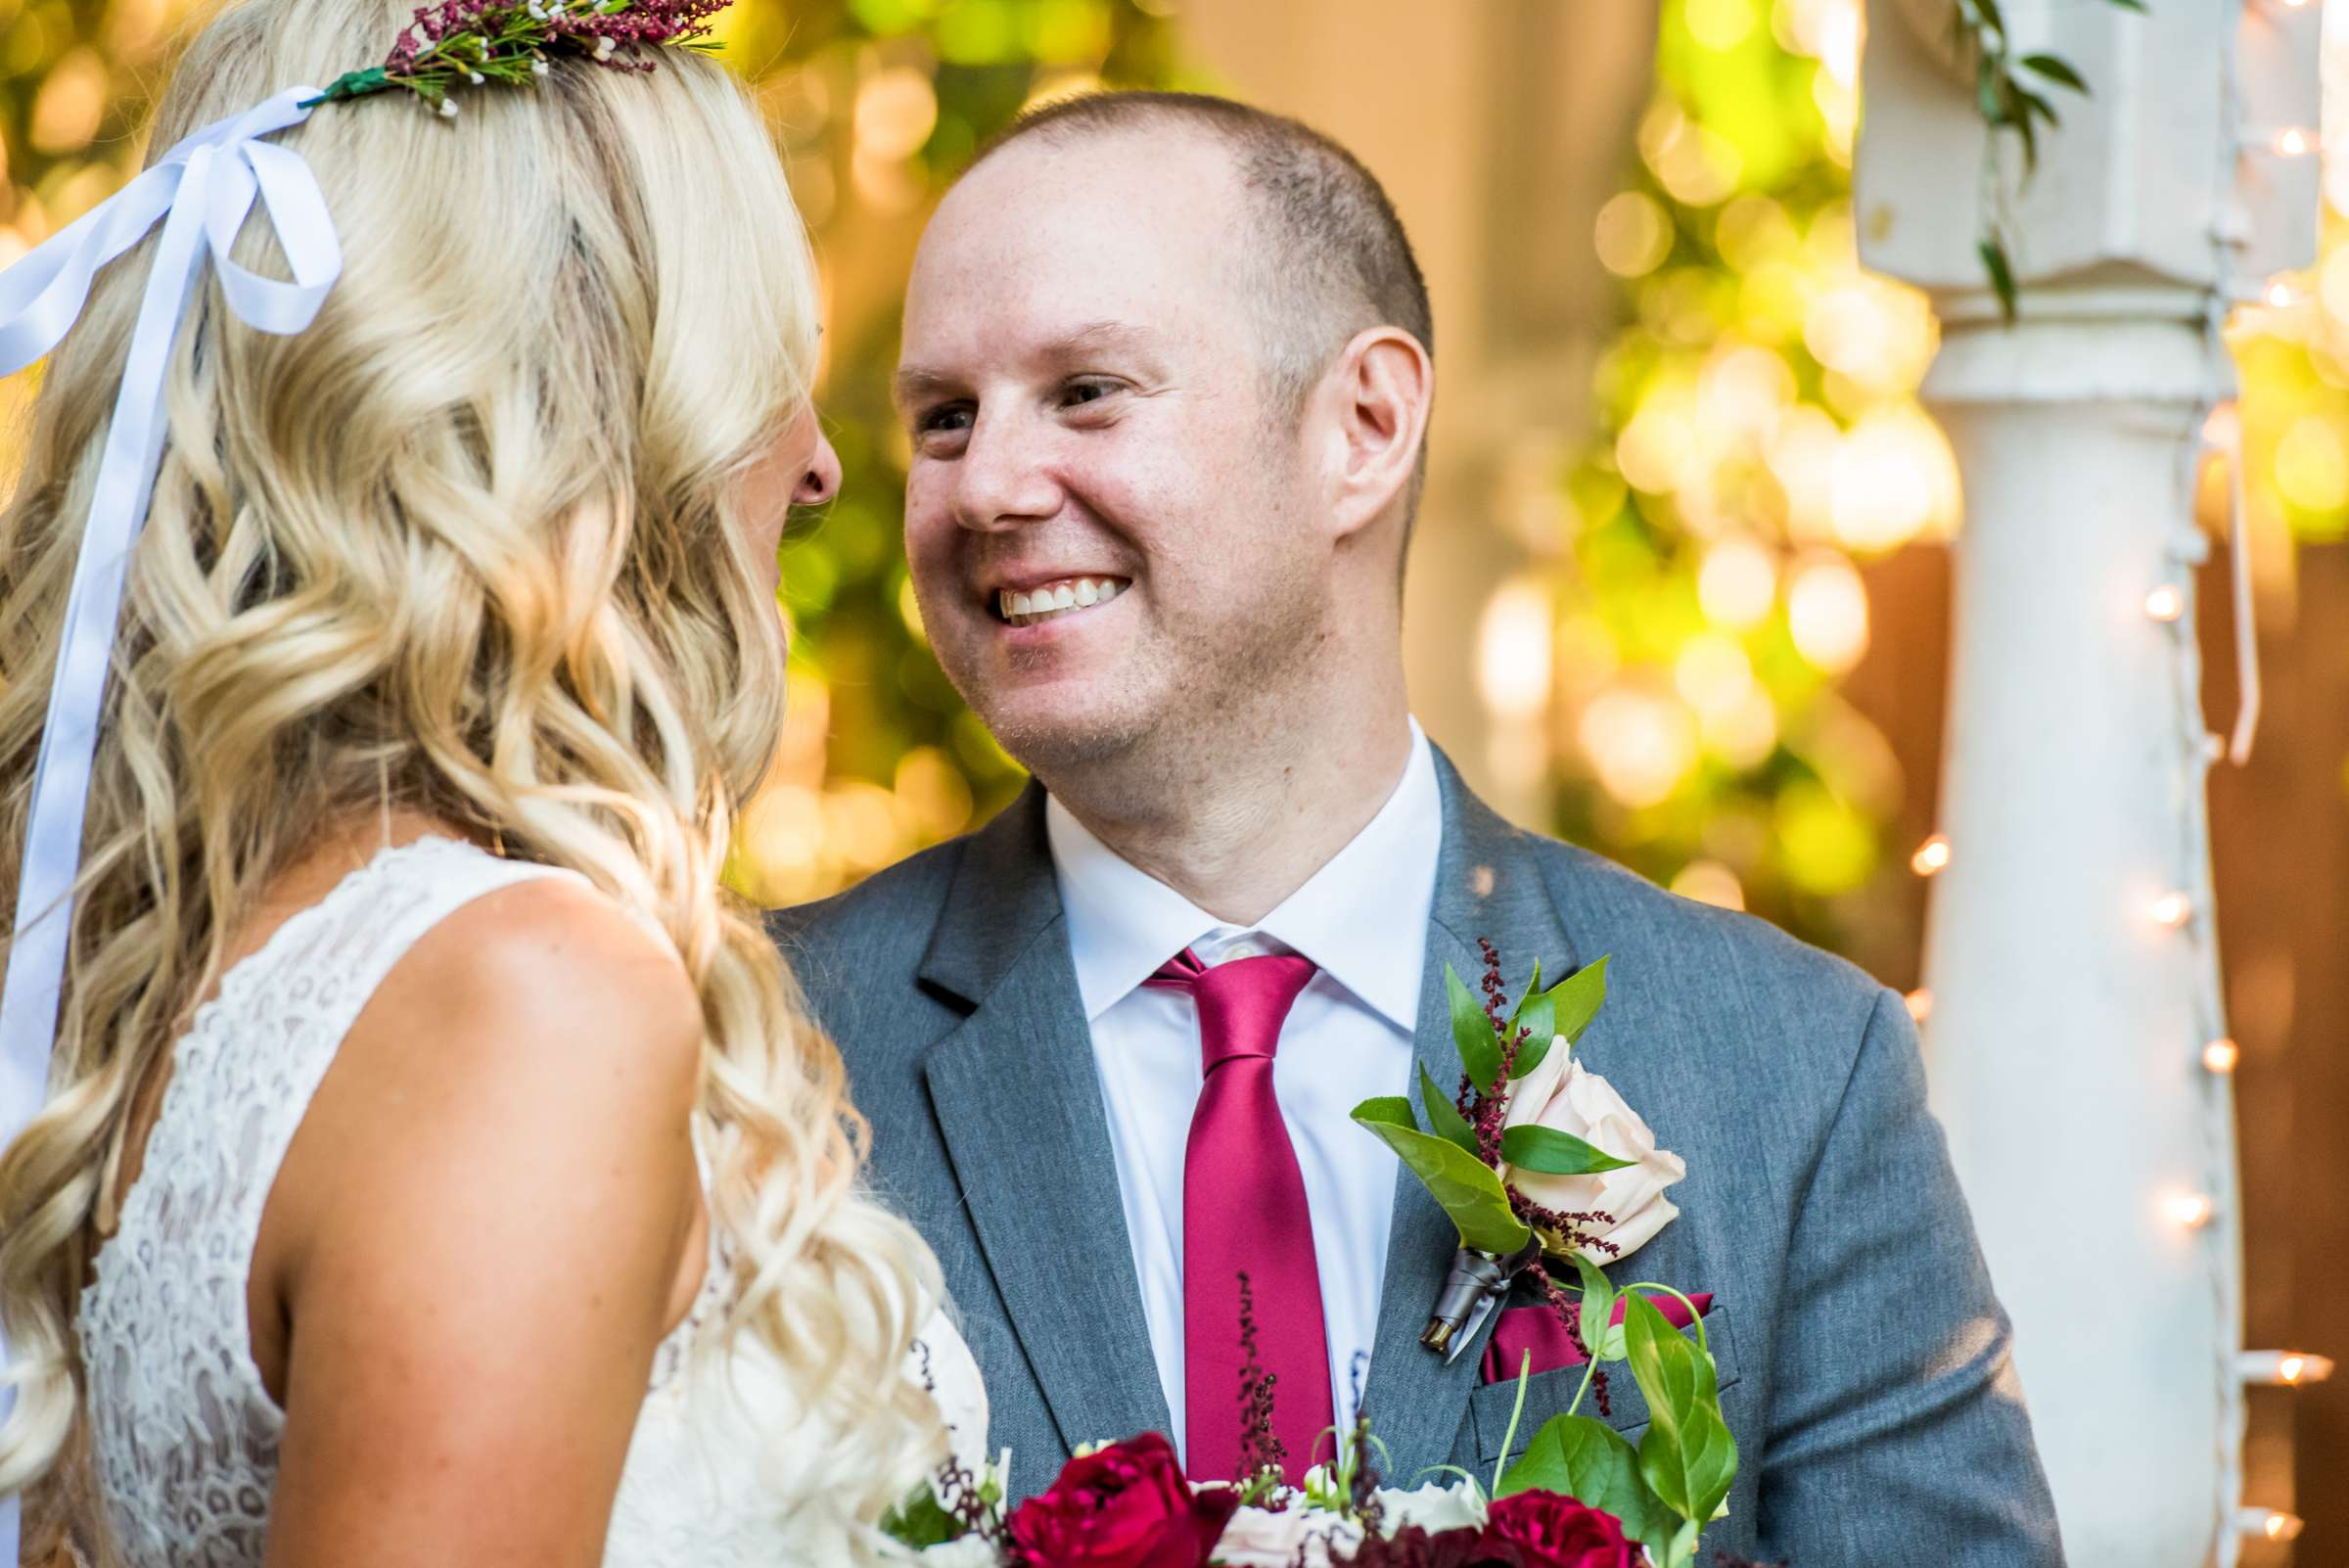 Twin Oaks House & Gardens Wedding Estate Wedding, Brittany and Sean Wedding Photo #36 by True Photography